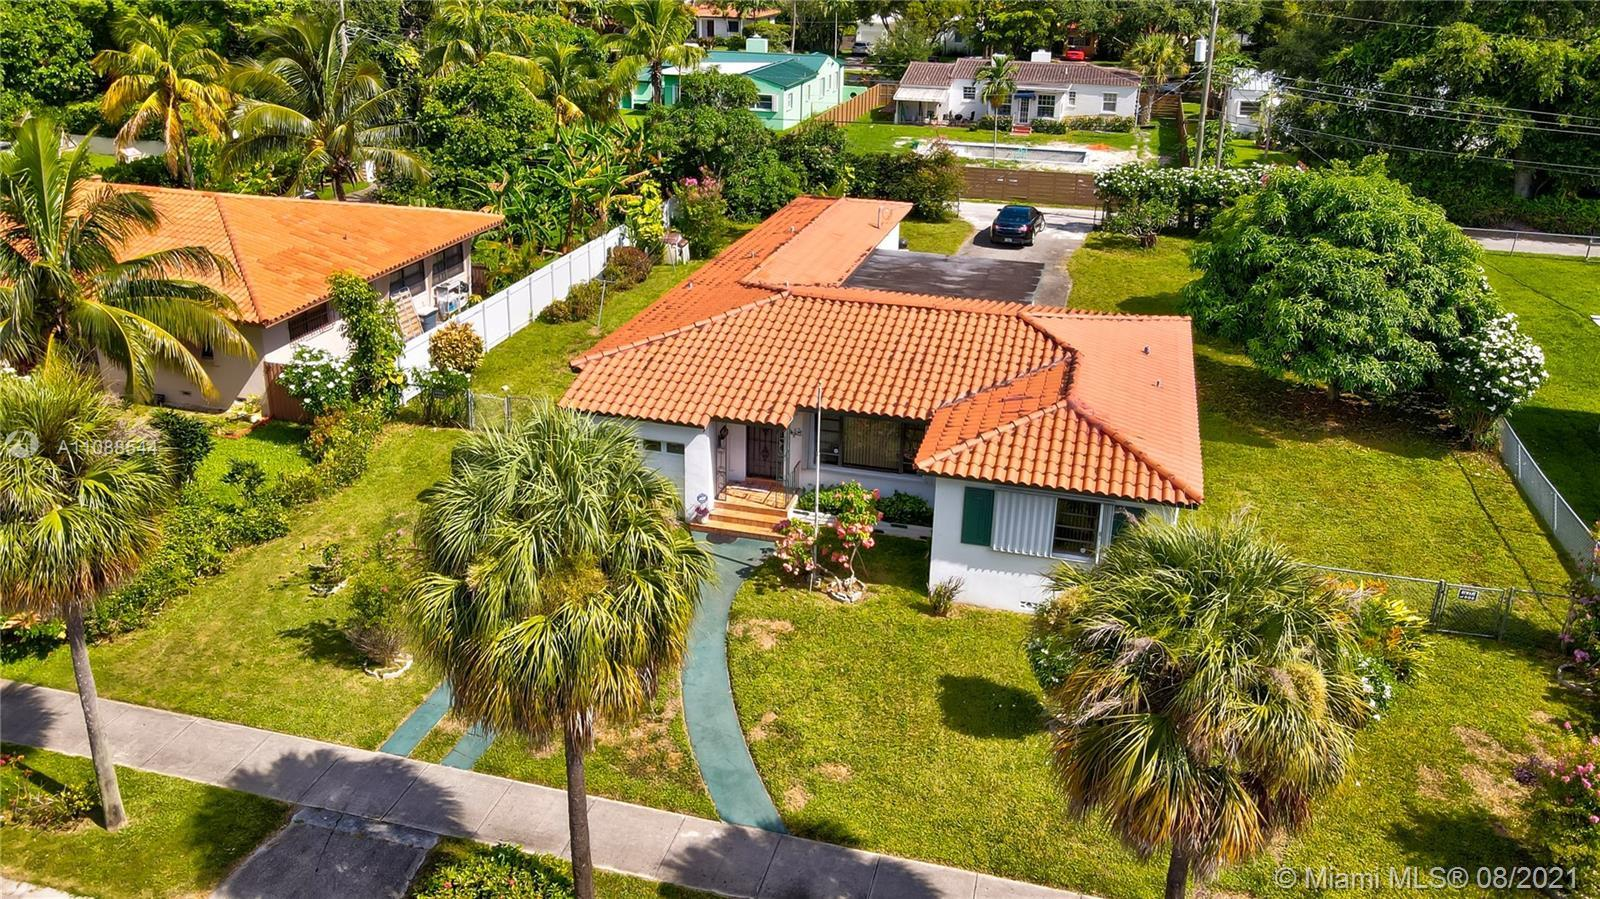 FANTASTIC MIAMI SHORES FAMILY HOME! THIS SPACIOUS 3/2 + OFFICE/DEN IS SITUATED ON HUGE DOUBLE LOT WI